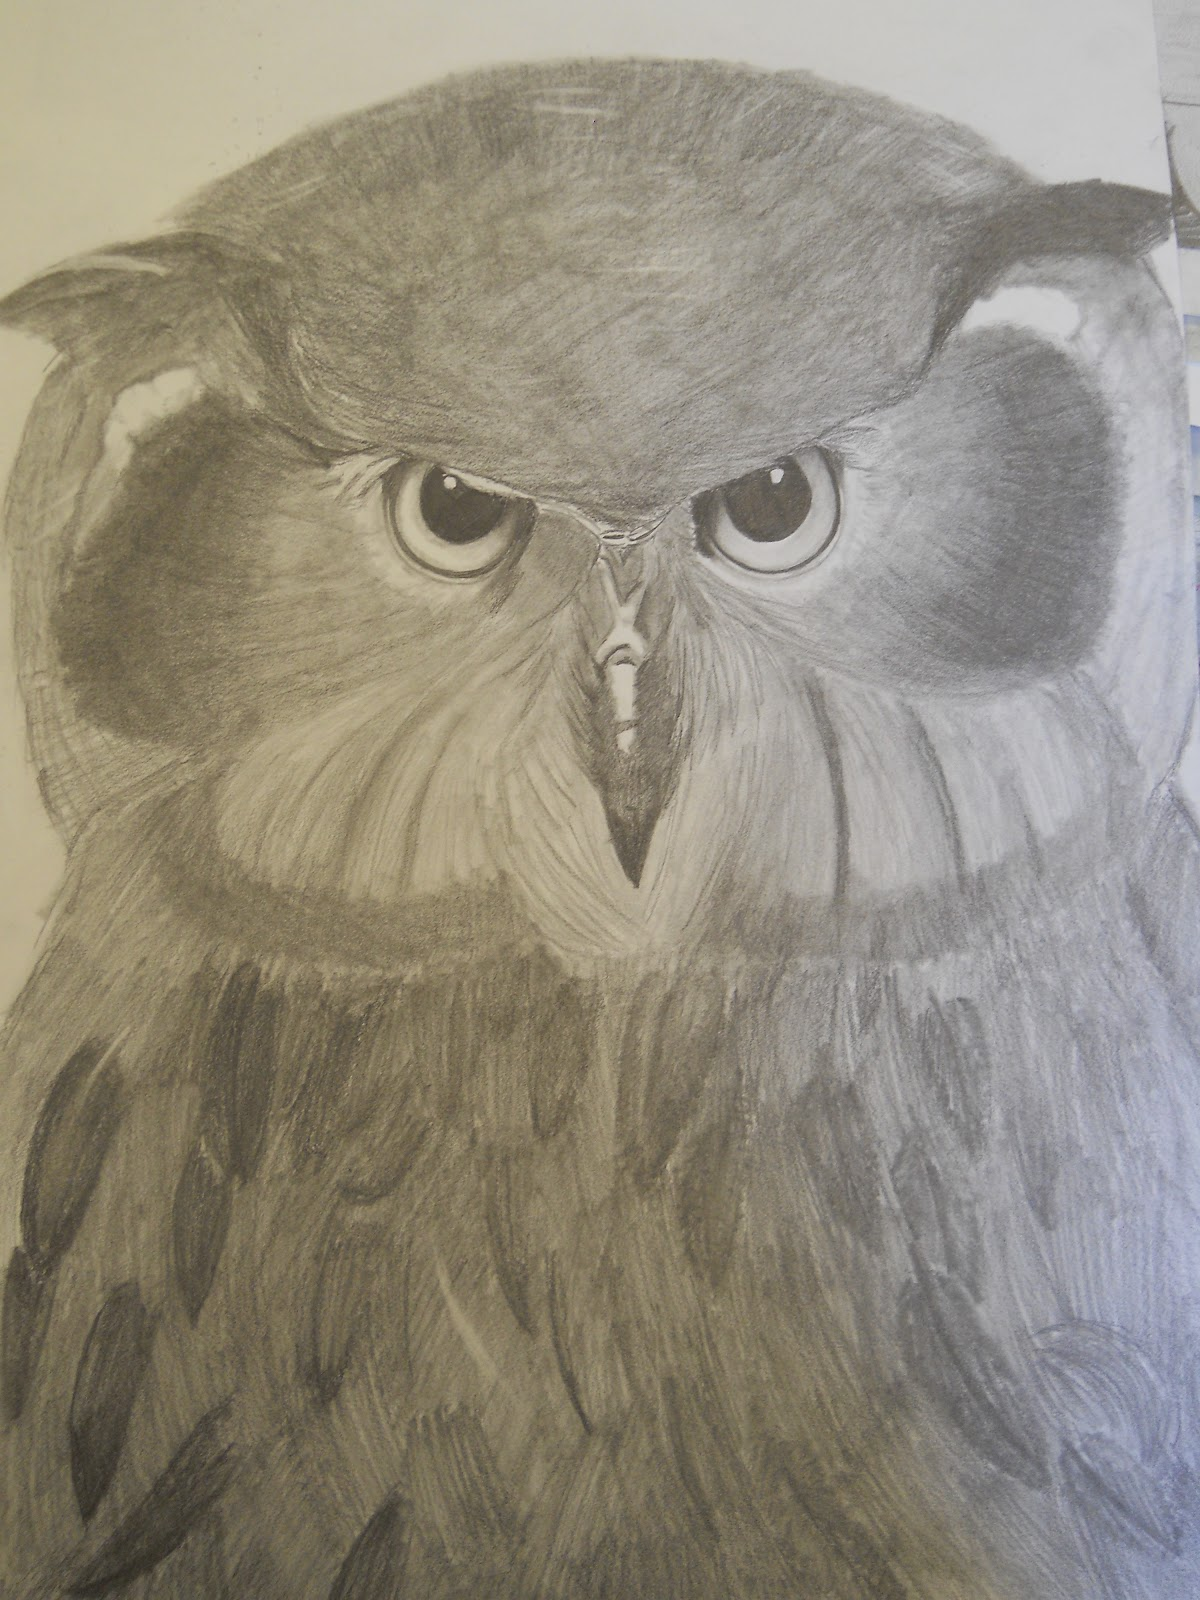 Pencil And In Color Drawing: Creative Expressions: Wild Animal Drawings In Pencil And